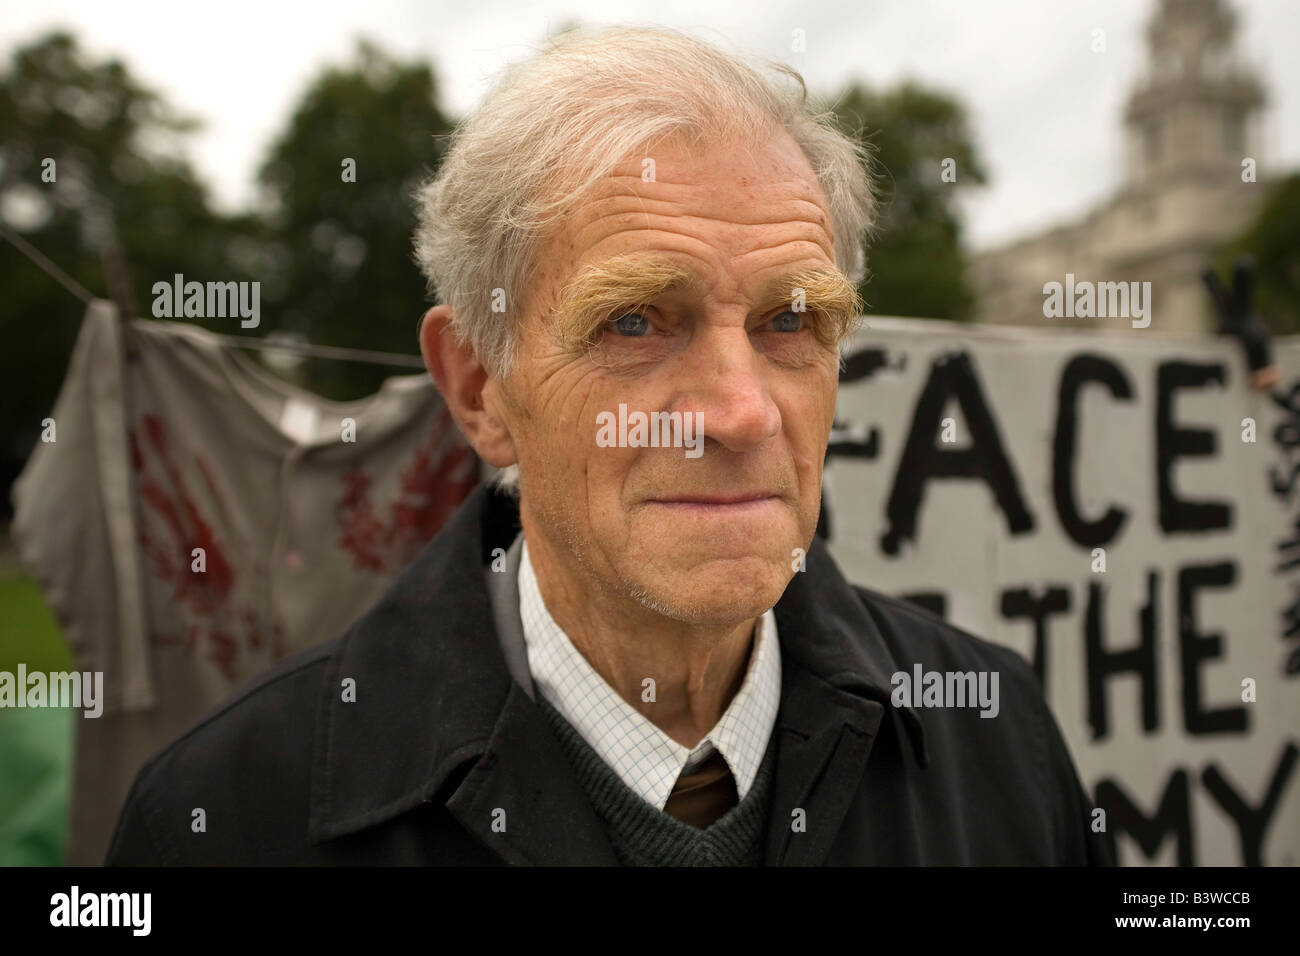 War protestor outside the houses of parliament 2009 - Stock Image